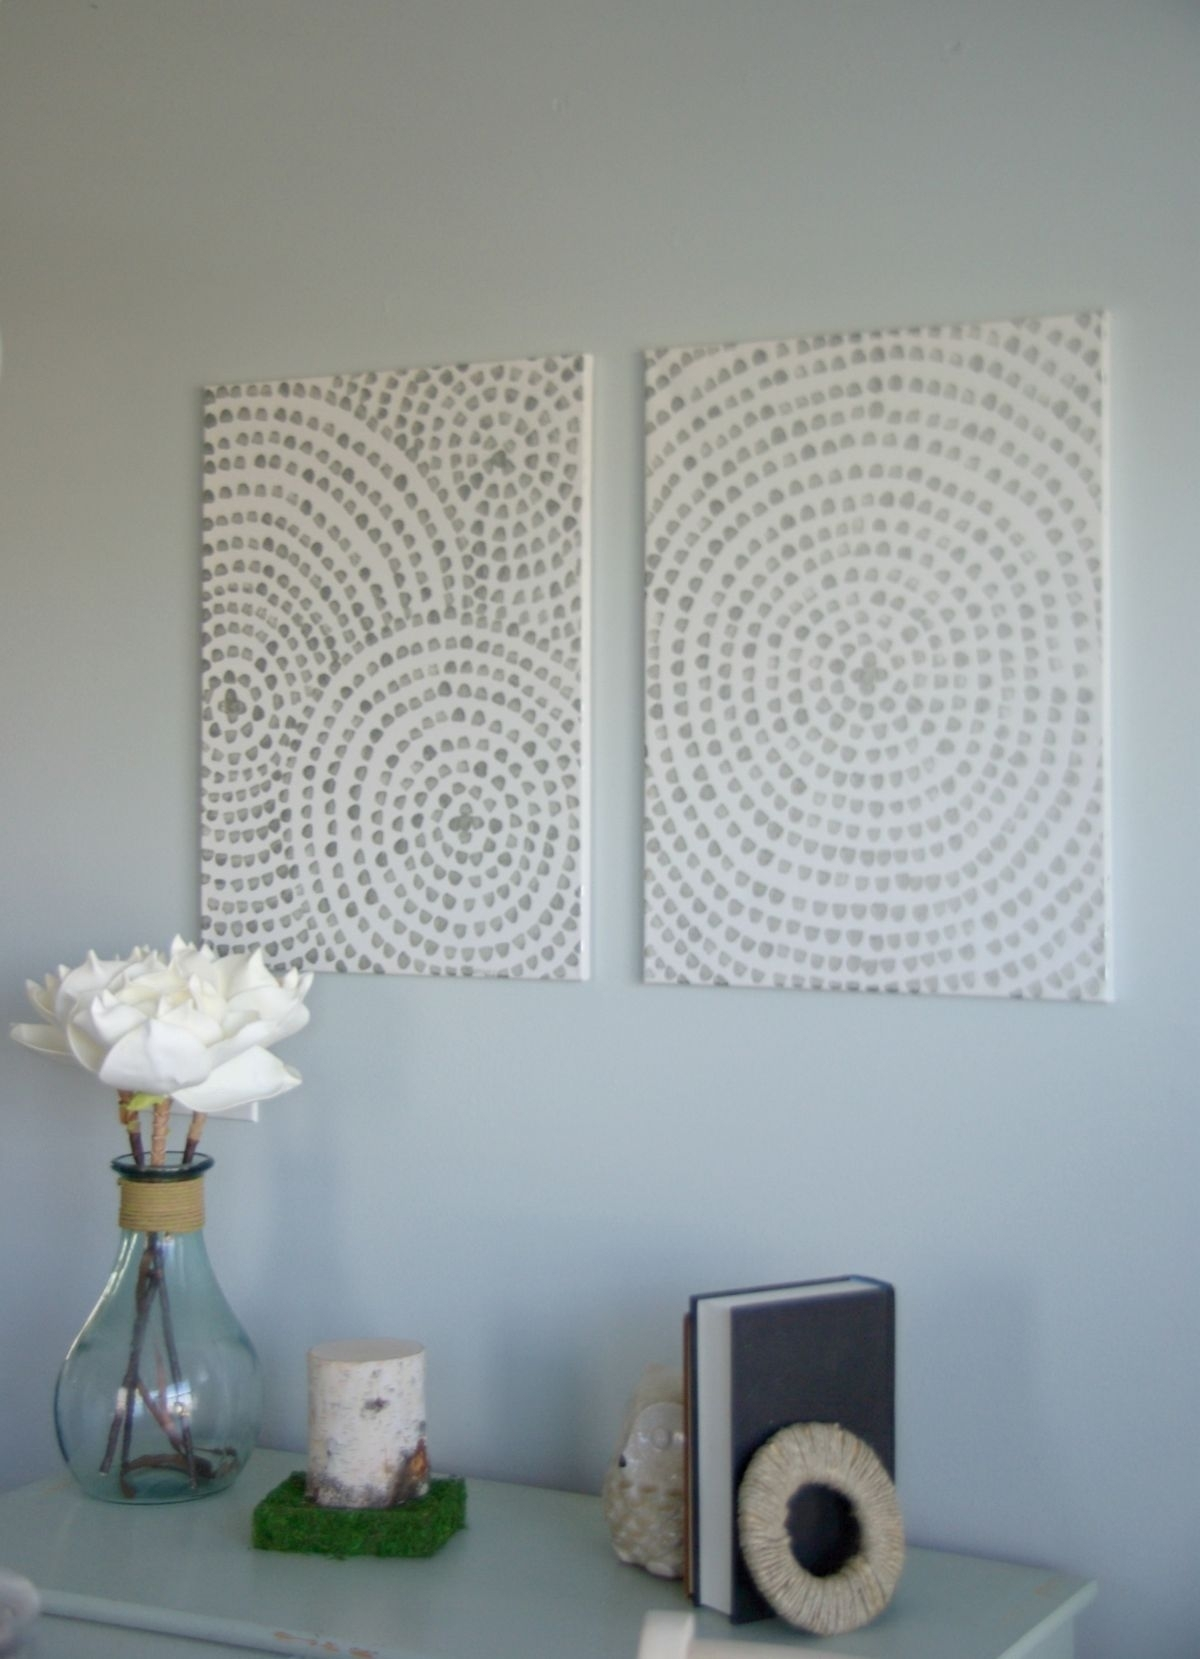 Diy Canvas Wall Art – A Low Cost Way To Add Art To Your Home | My Inside Most Recently Released Gray Canvas Wall Art (View 12 of 20)